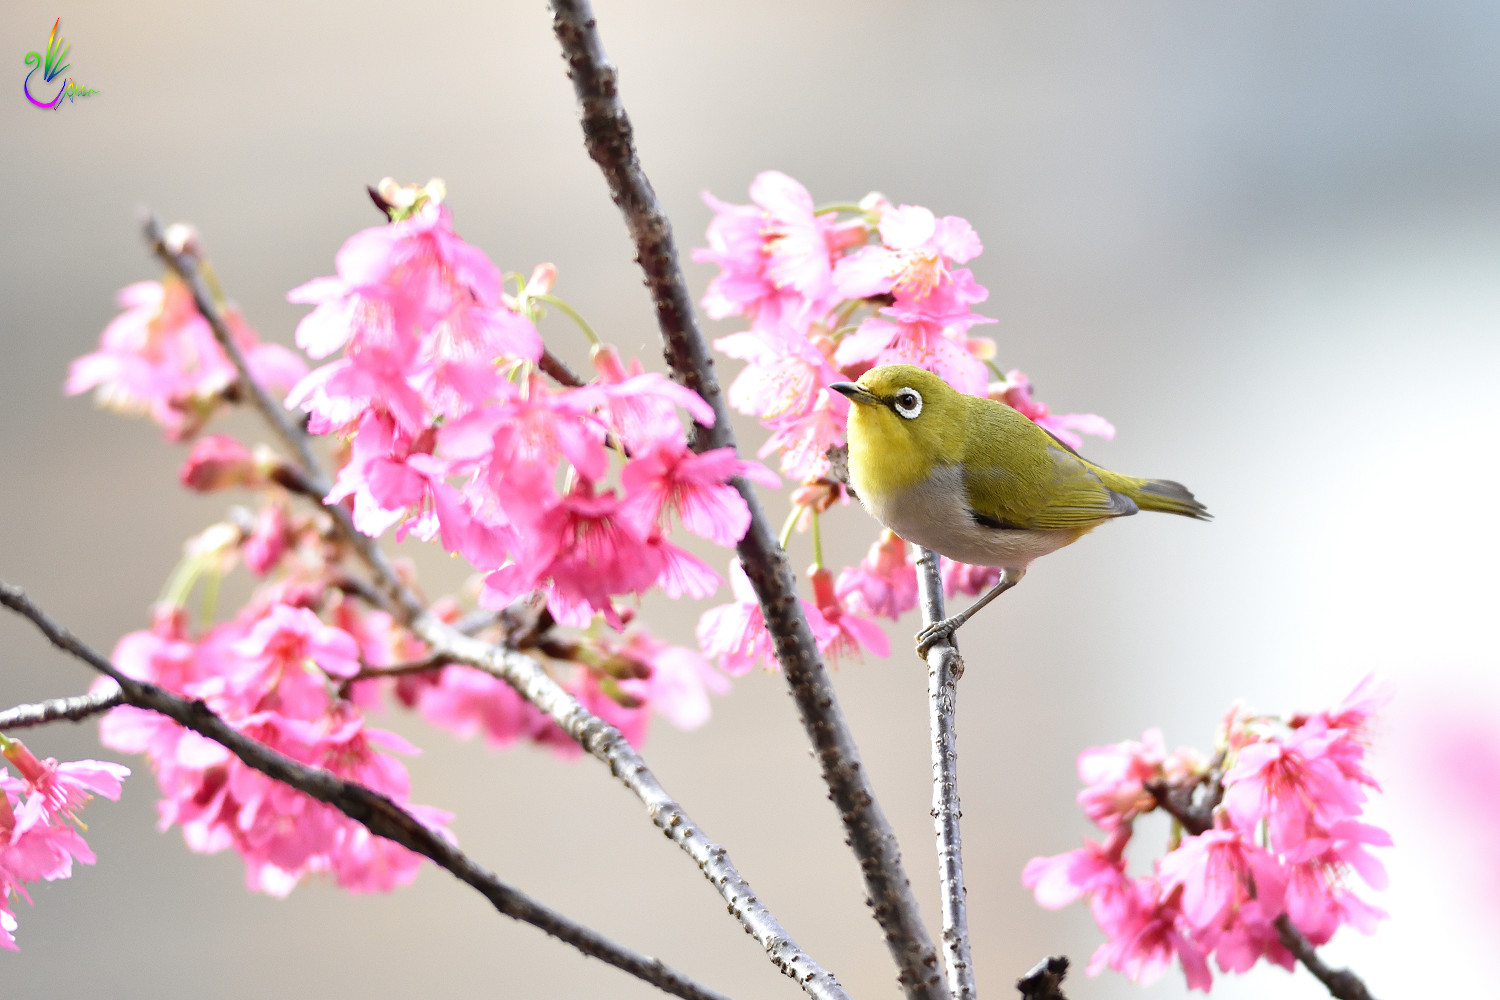 Sakura_White-eye_7833